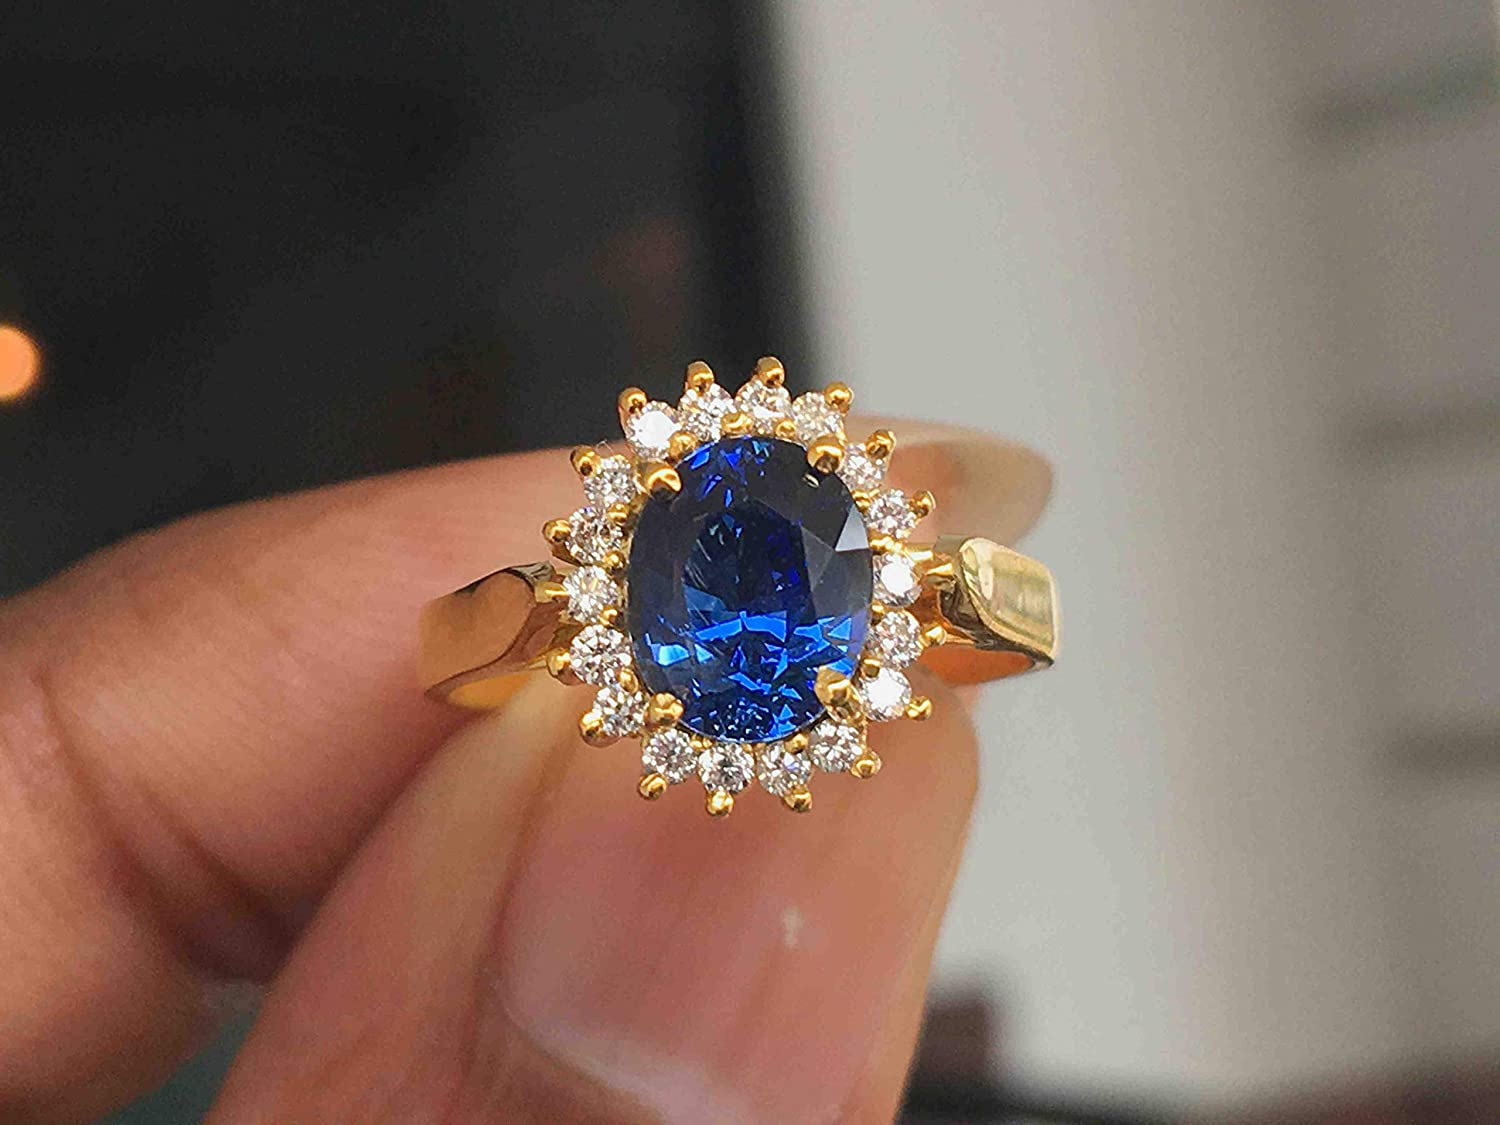 blue sapphire engagement rings 2021